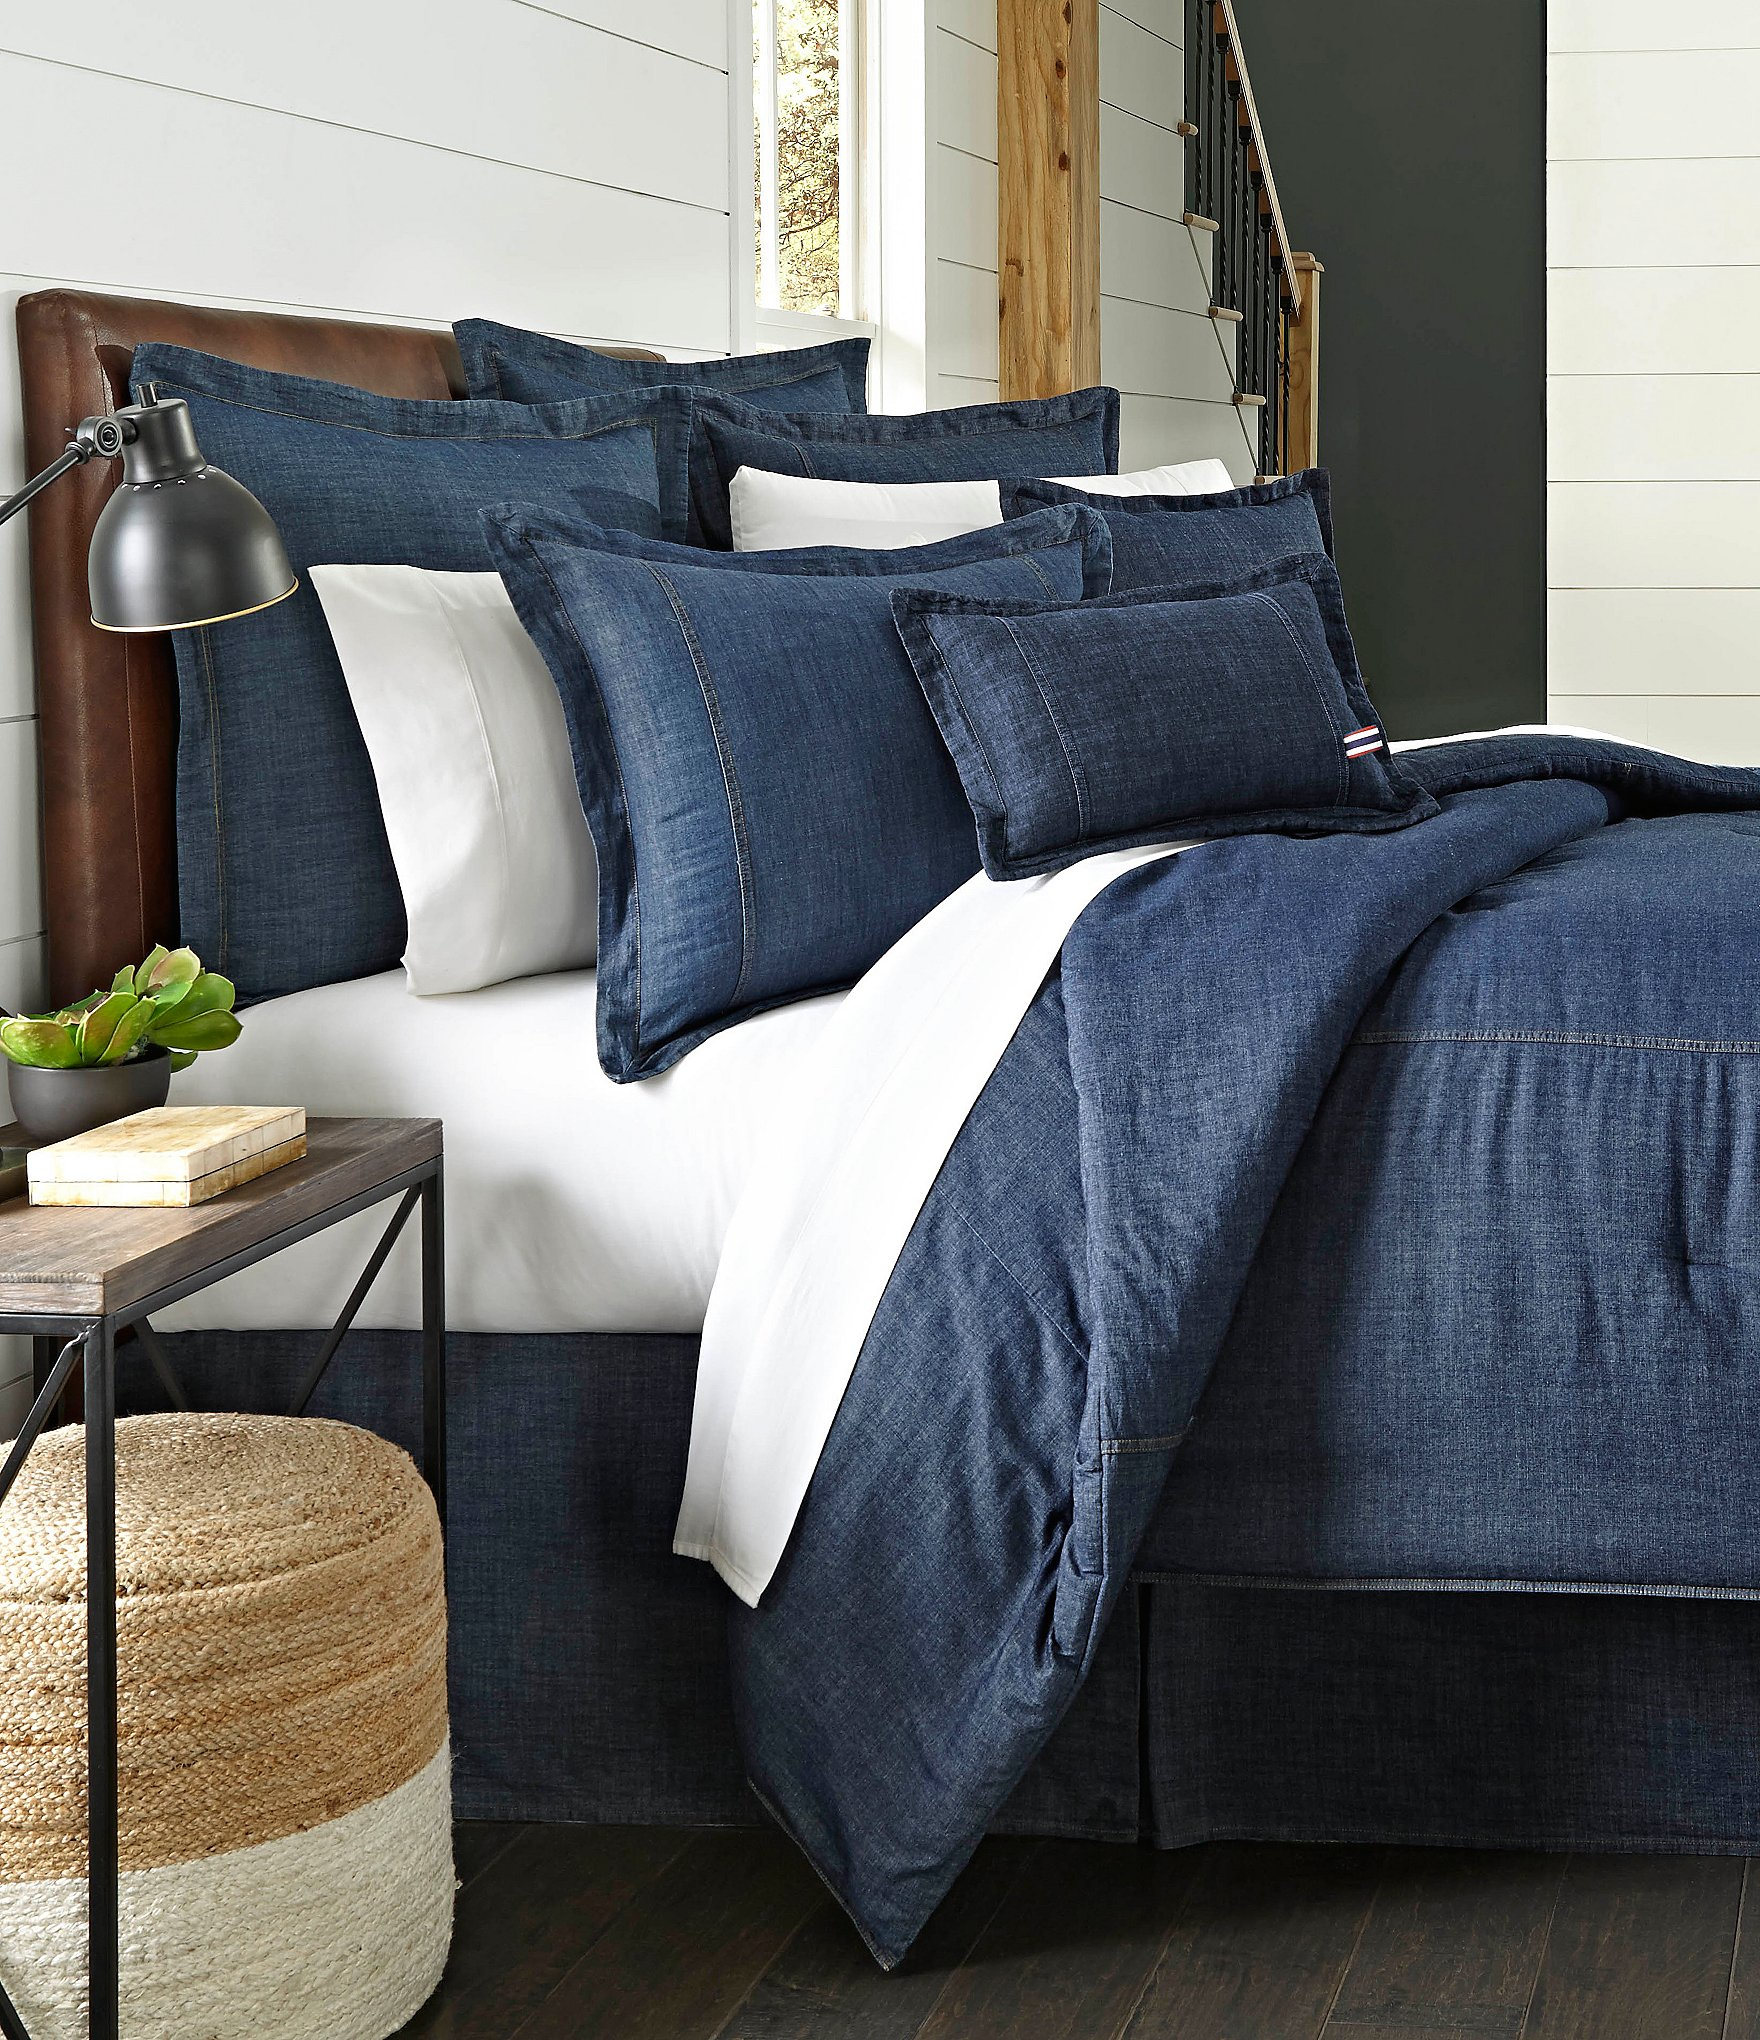 Cremieux Cotton Denim Comforter Dillard S